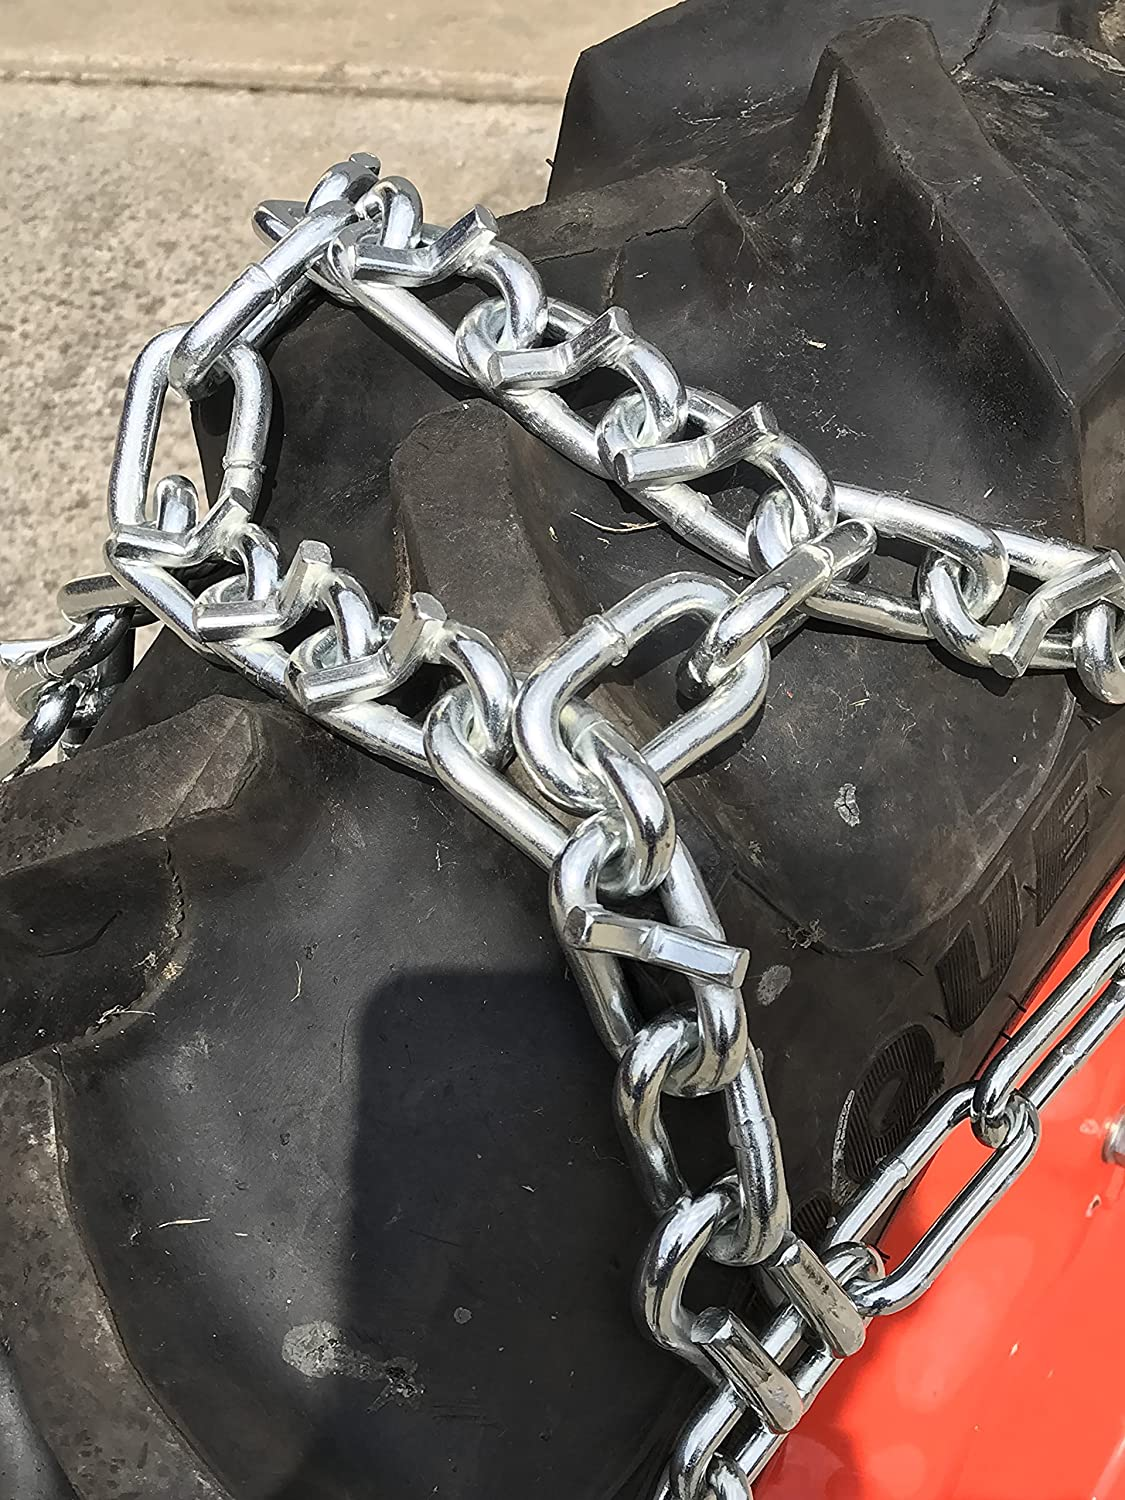 TireChain.com Compatible with Mahindra 1538 Shuttle AG R1 Rear 11.2x24 V-BAR Duo Grip Tire Chains